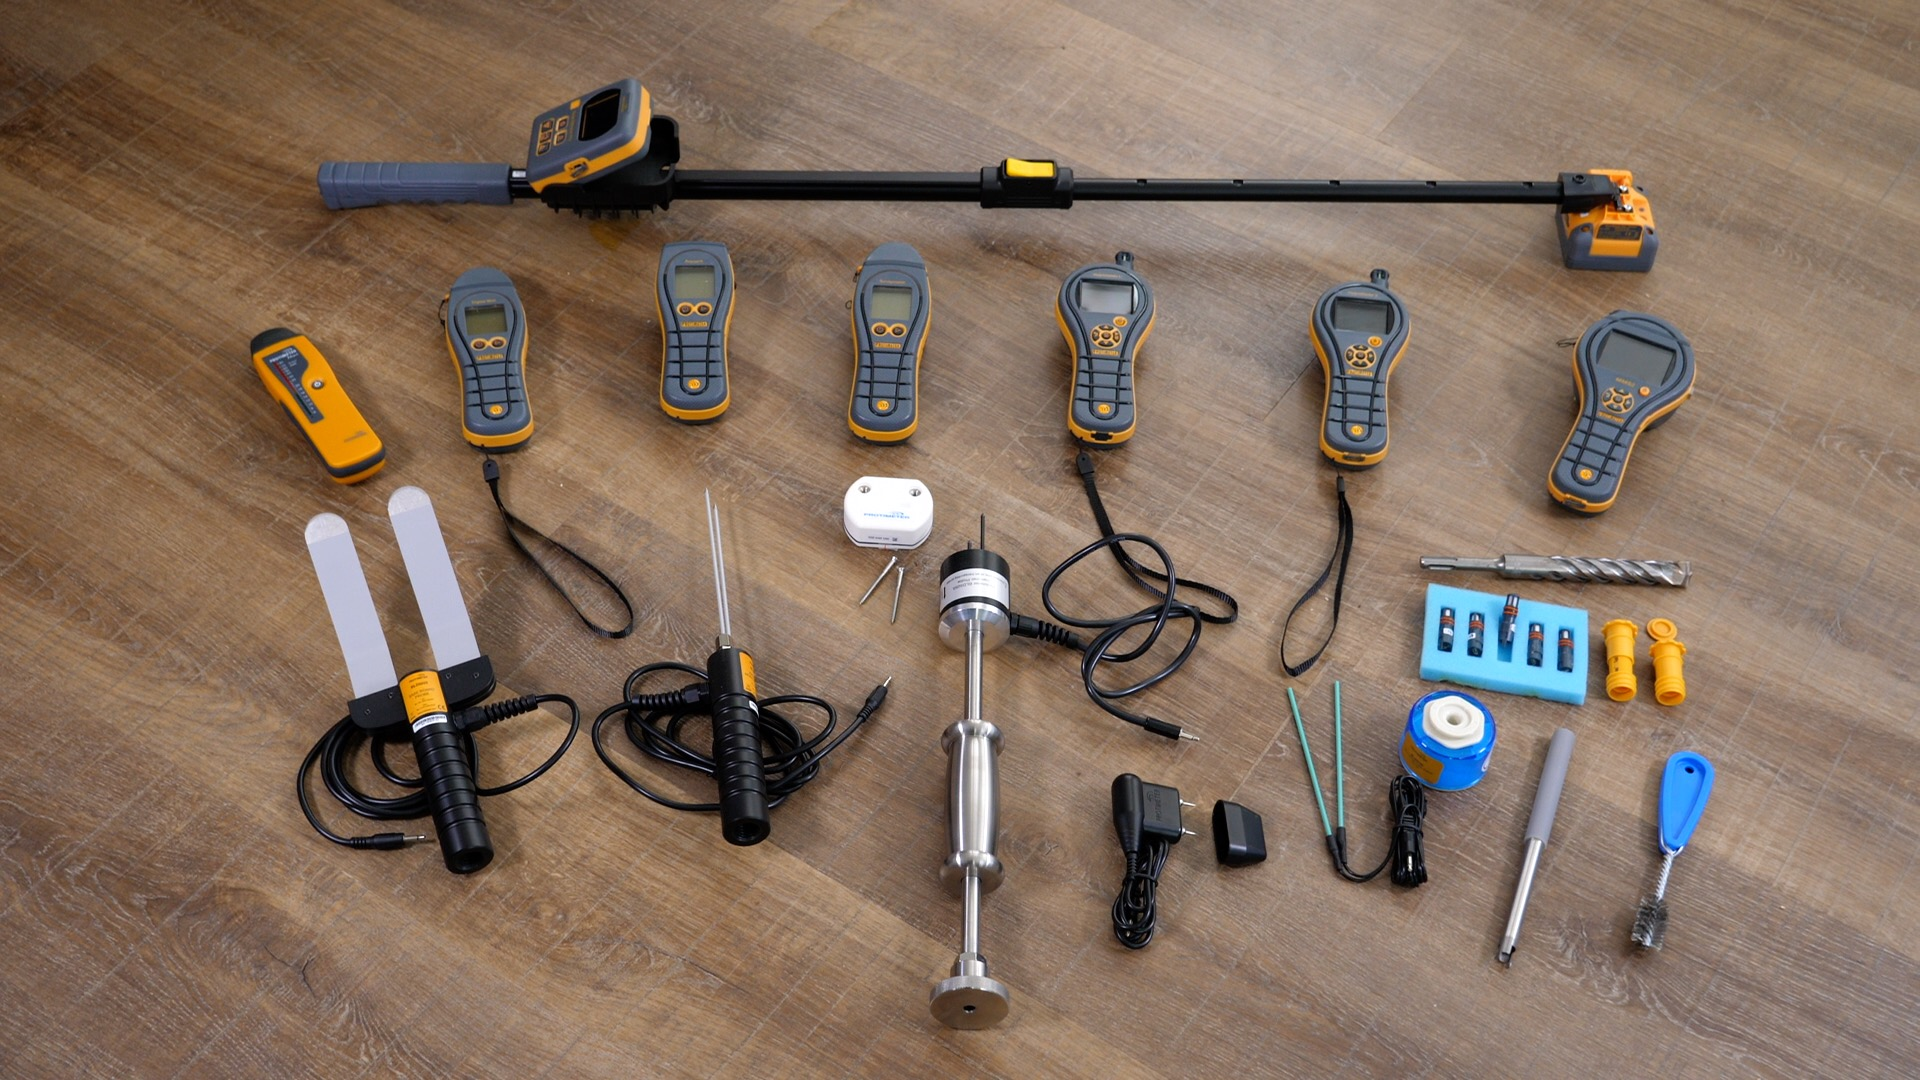 Damp Testing Equipment Every Home Inspector Needs in Their Toolkit